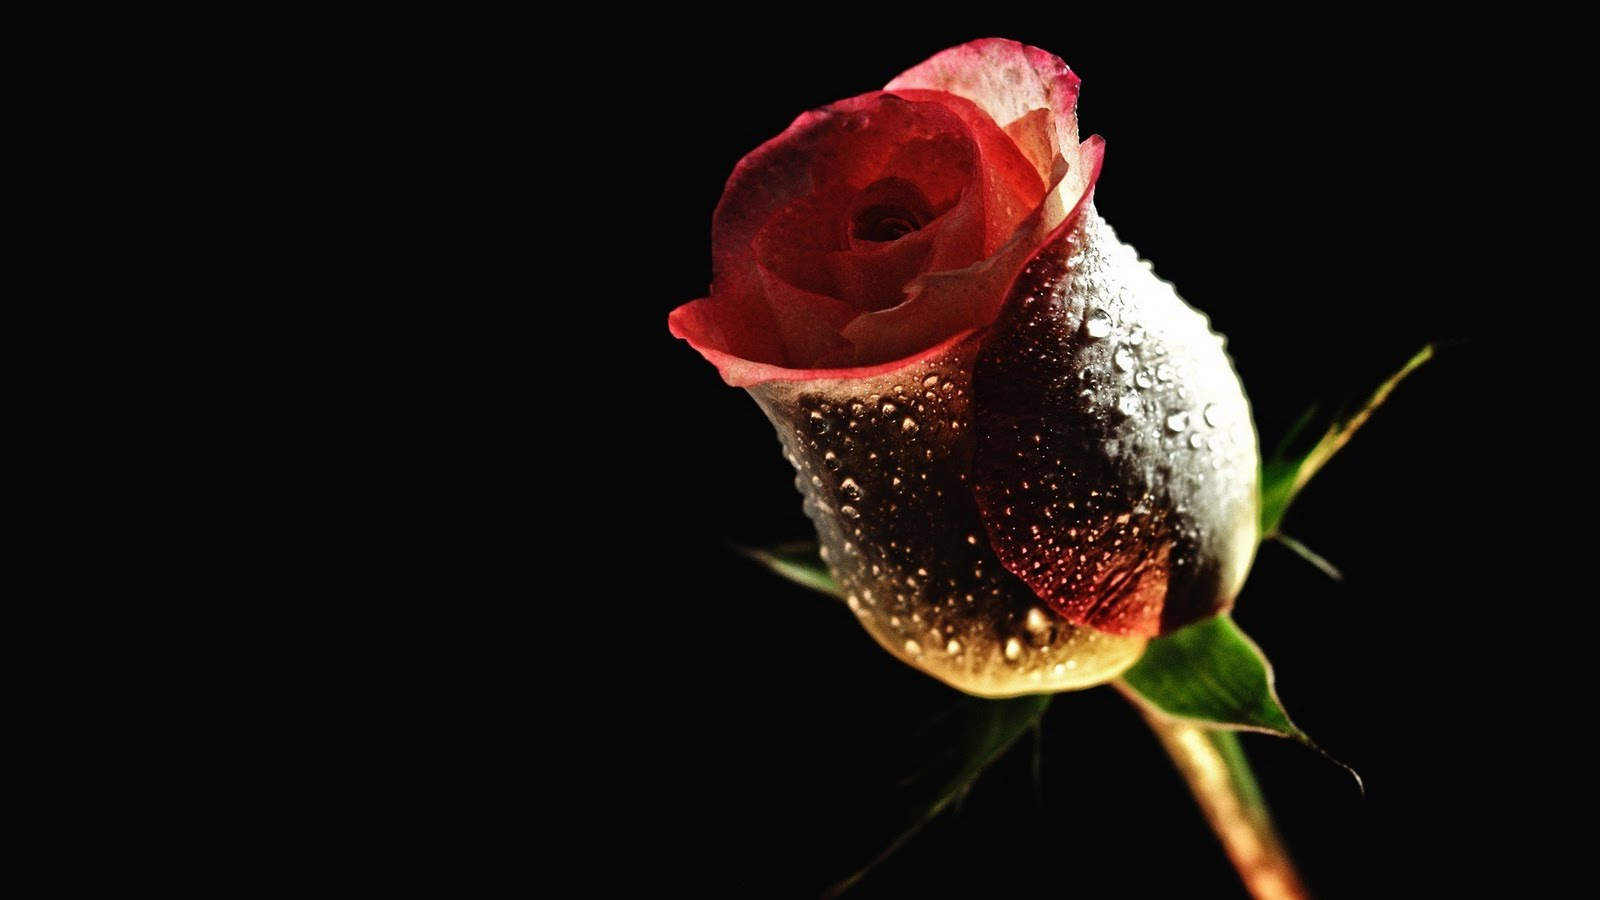 Wallpaper of flowers red rose 18 desktop background - Red flower desktop wallpaper ...